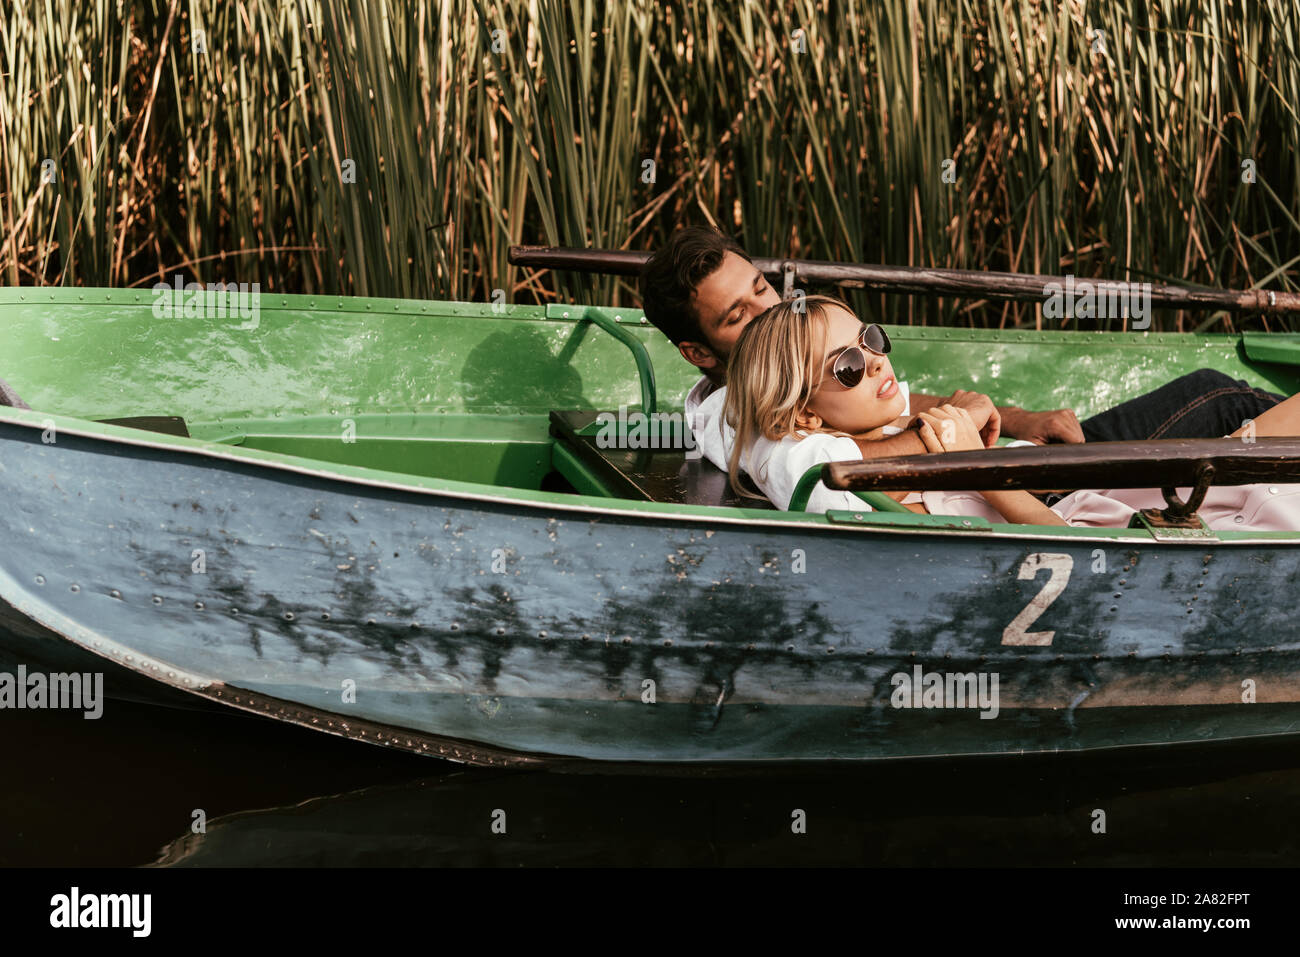 young couple relaxing in boat on river near thicket of sedge Stock Photo